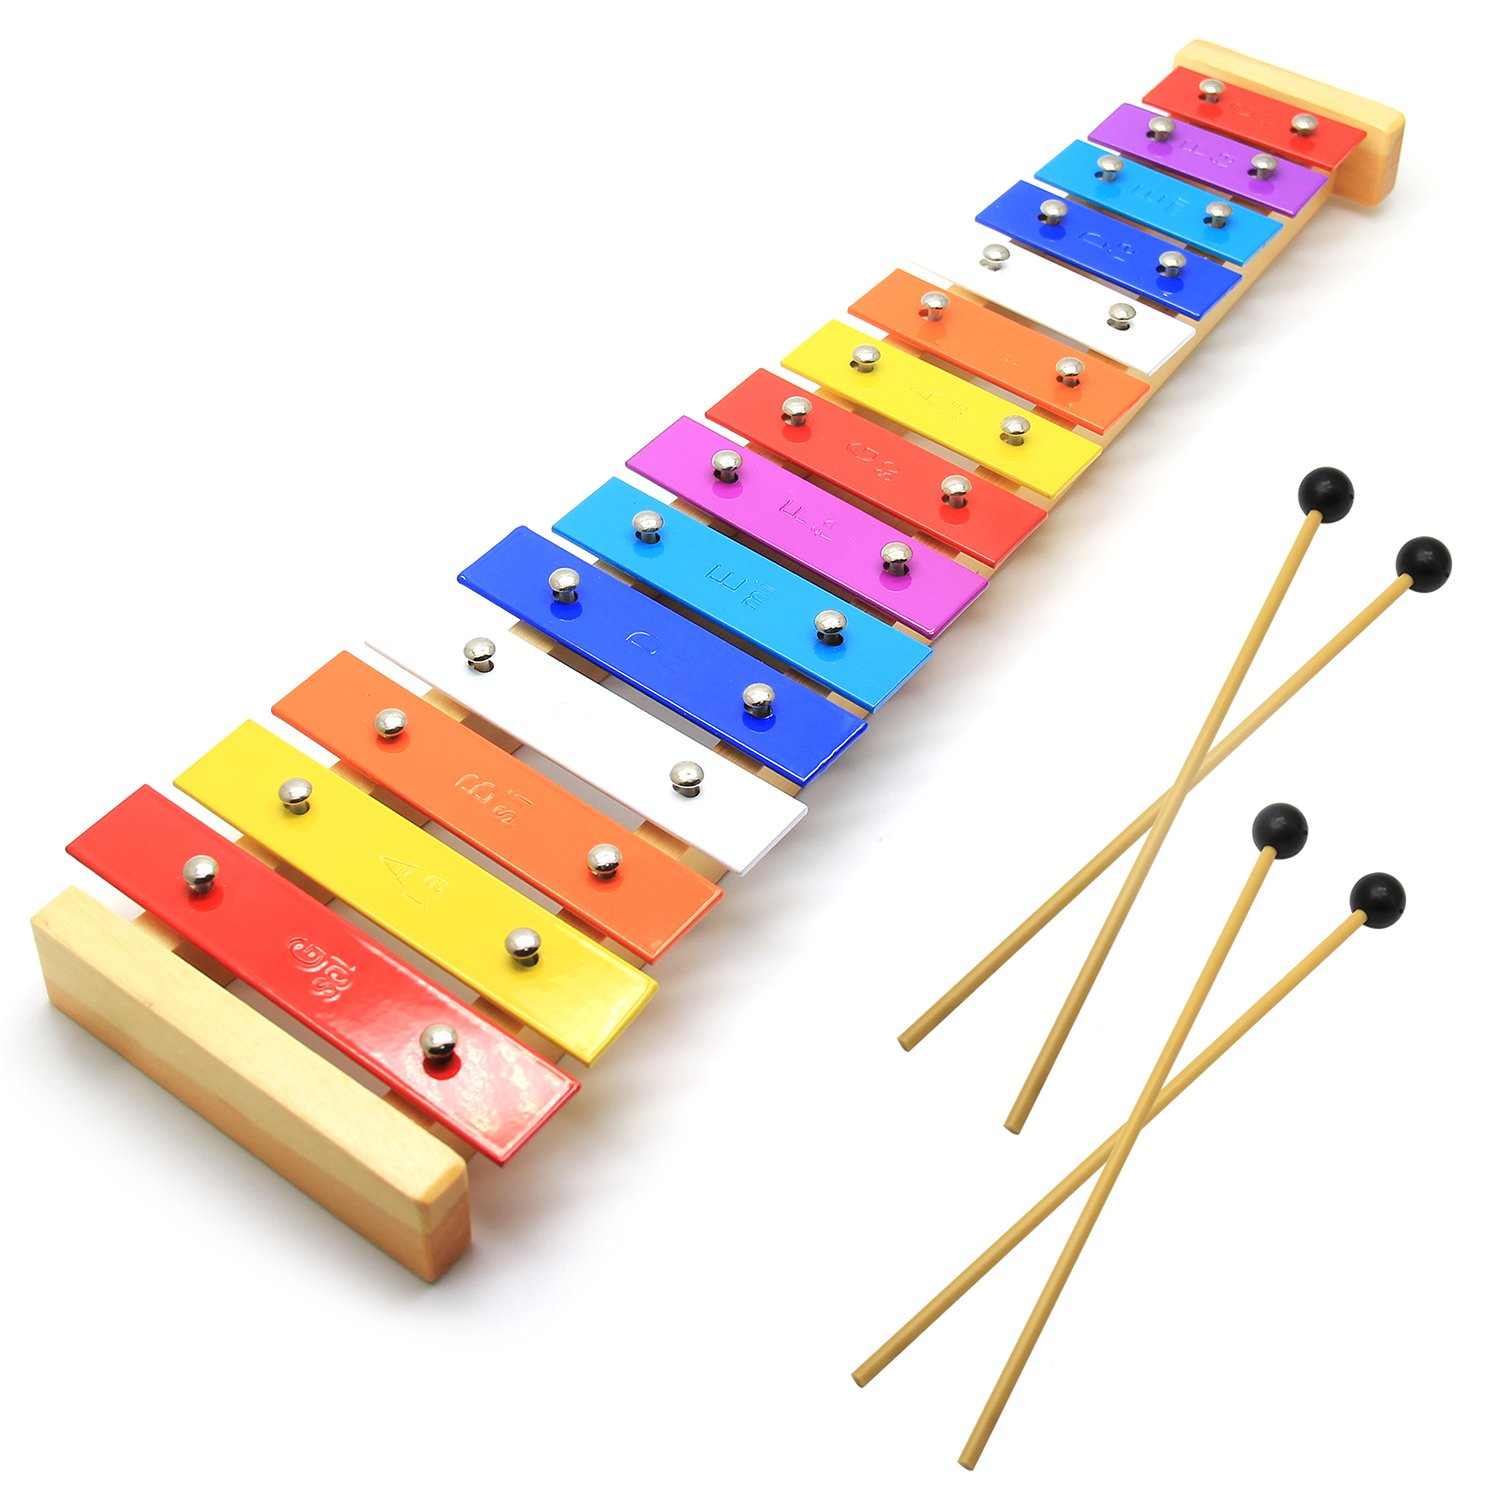 CELEMOON Natural Wooden Toddler Xylophone Glockenspiel For Kids with Multi-Colored Metal Bars Included Two Sets of Child-Safe Wooden Mallets (15-tone) by CELEMOON